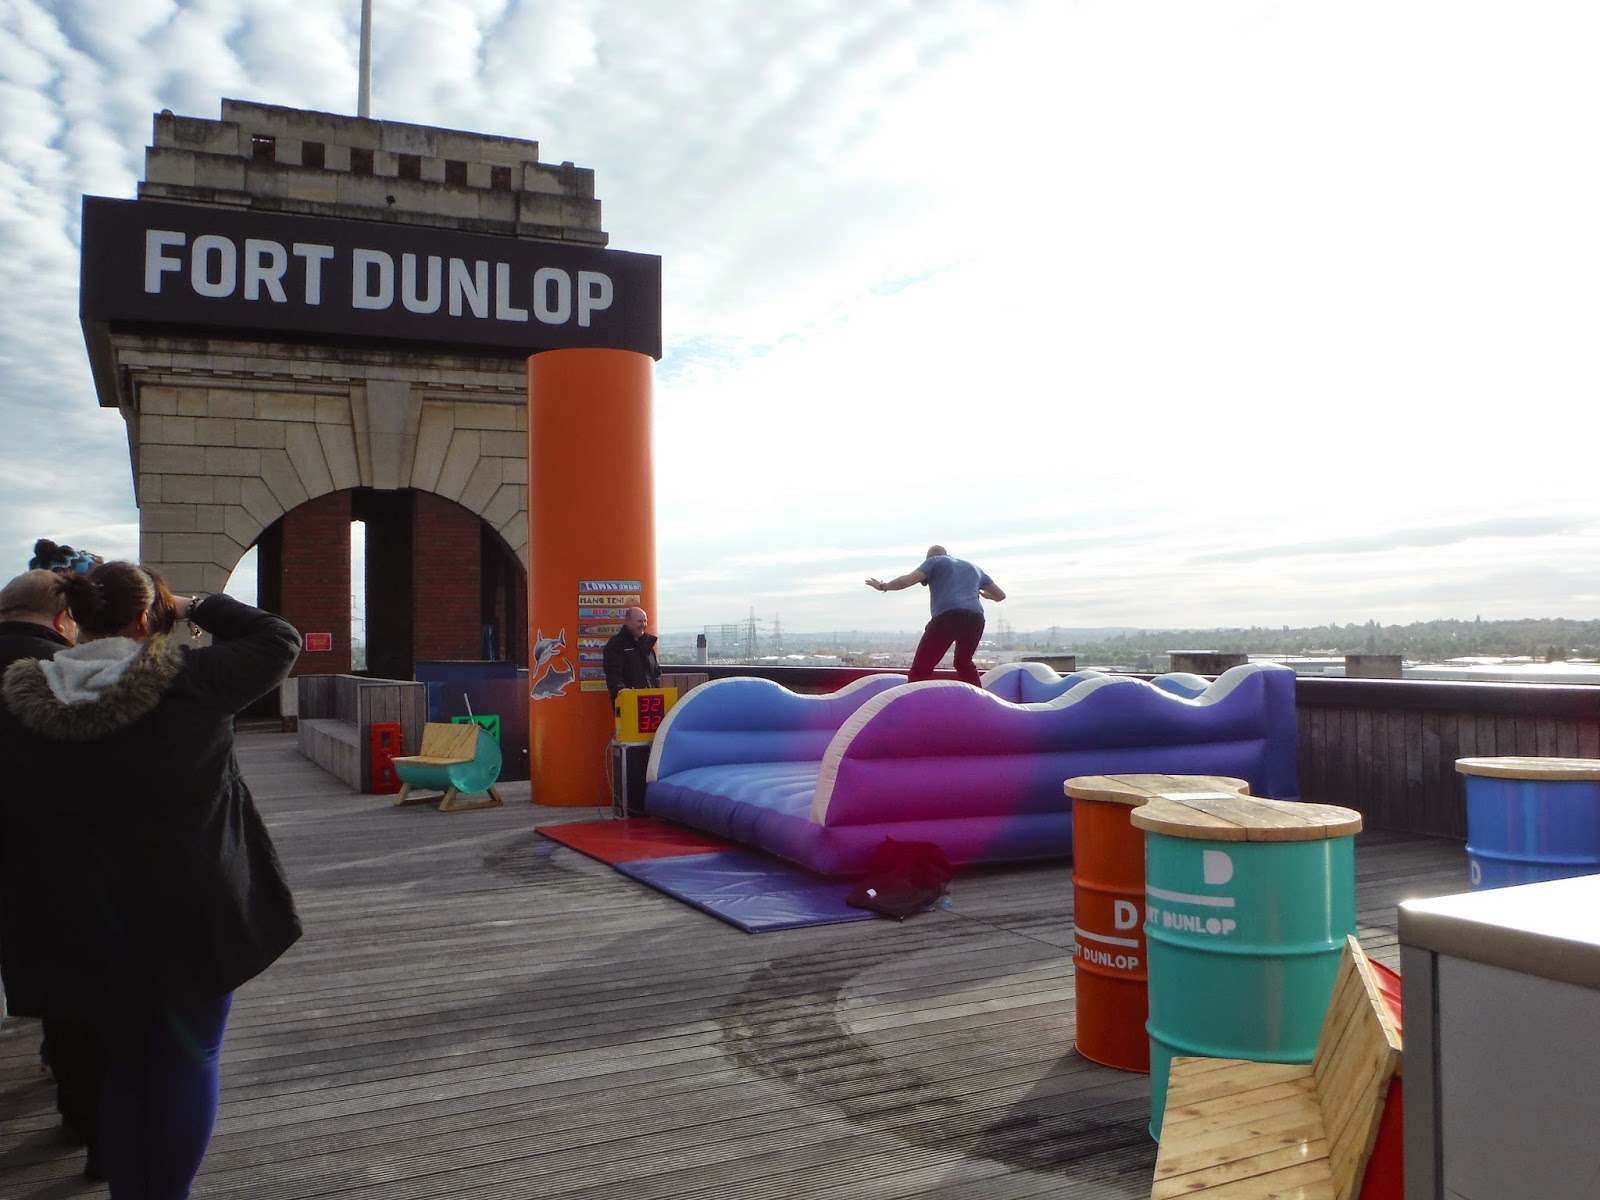 On the roof of Fort Dunlop. Chairs and tables can be seen across the roof, as can a surfboard ride